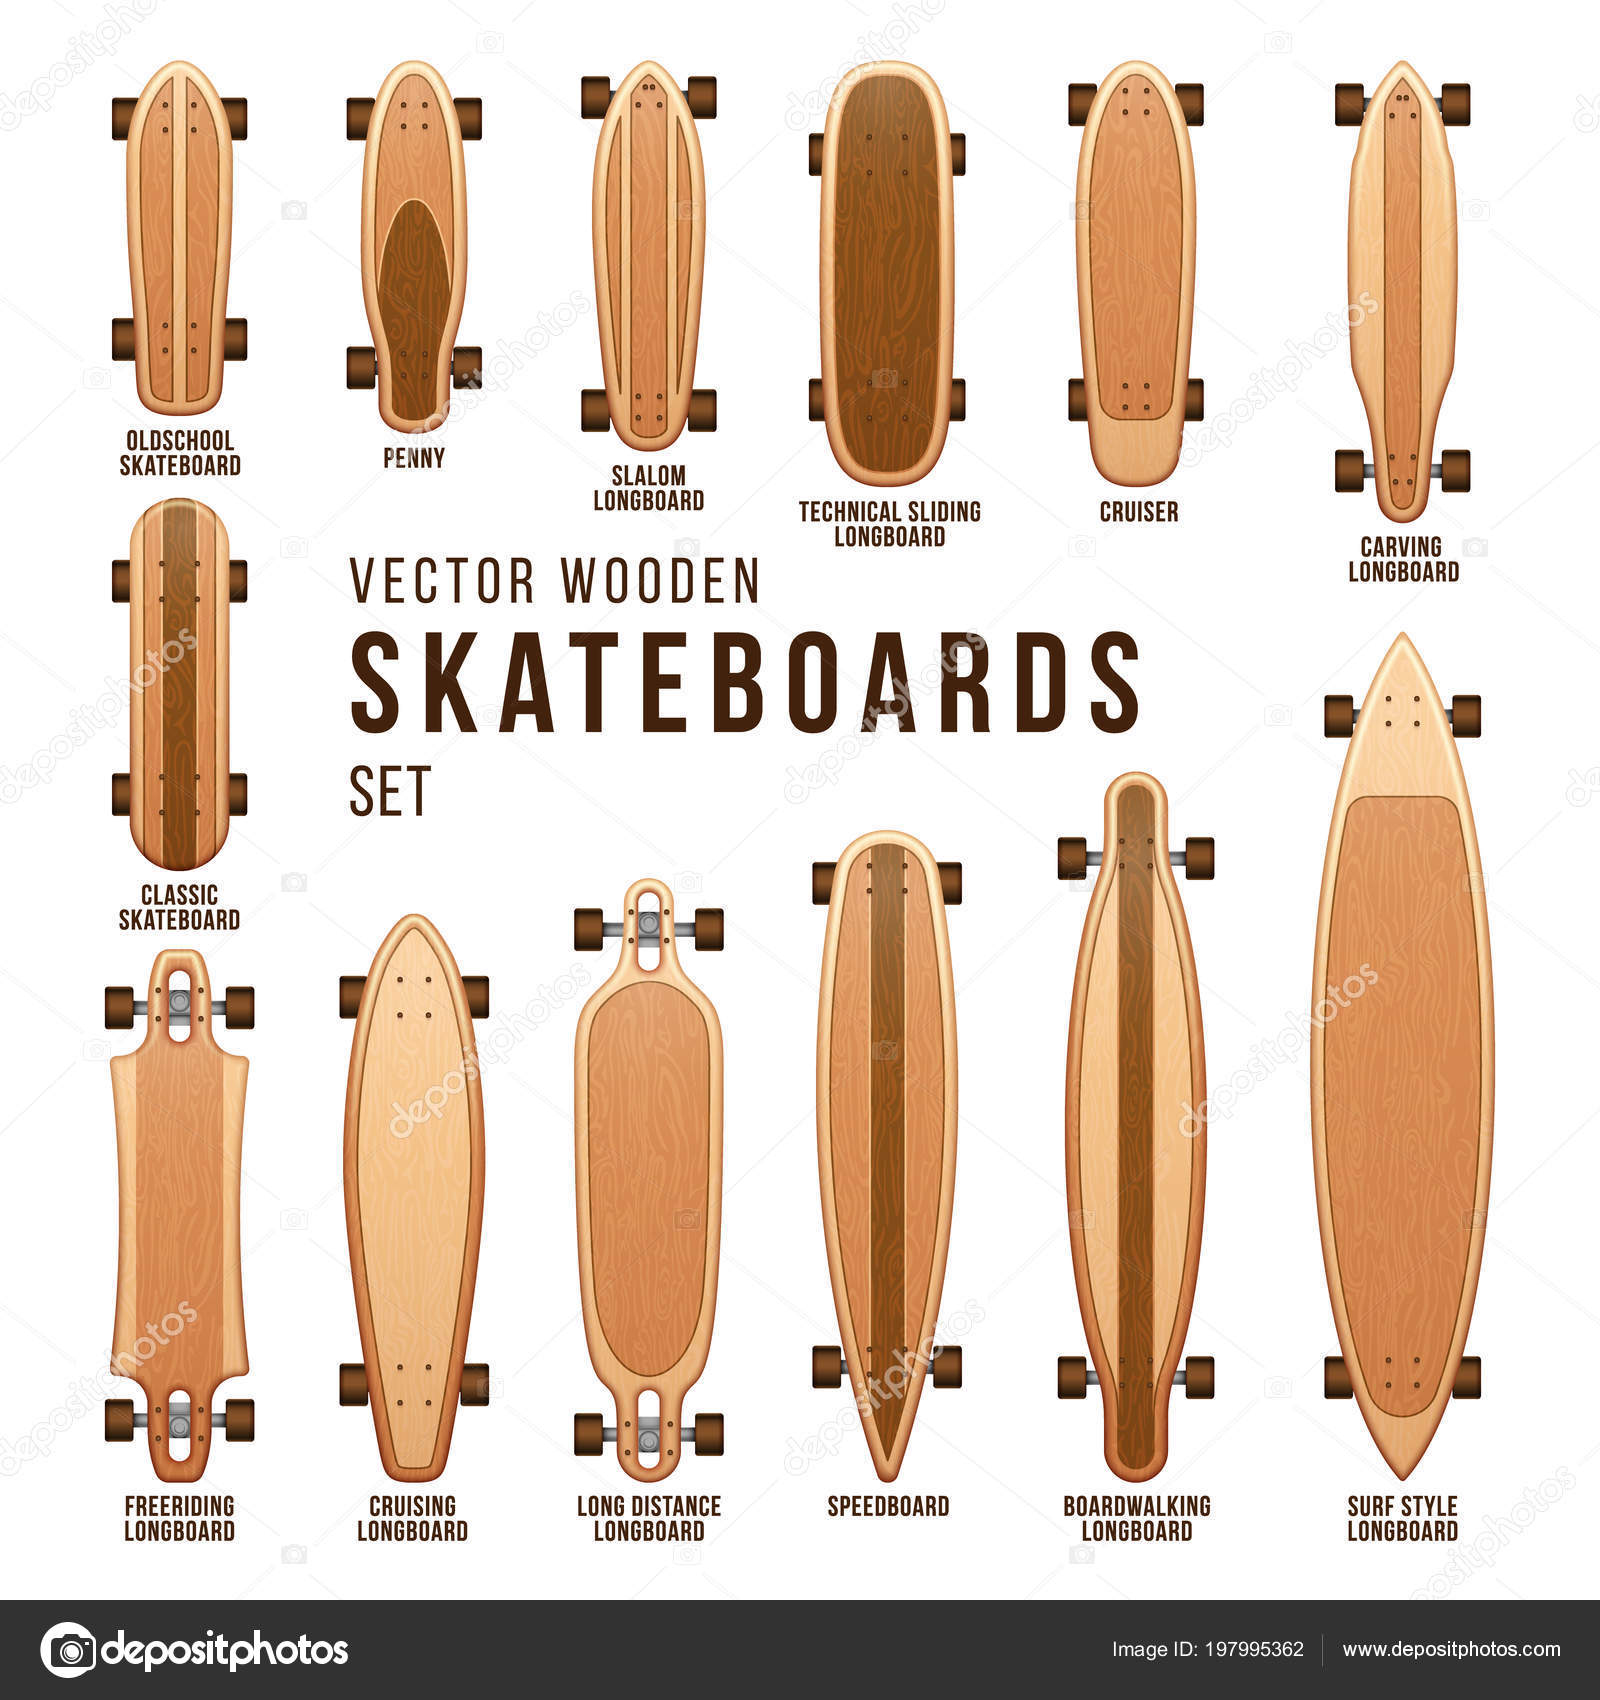 Different Skateboard Types Vector Templates Set Penny Board And Cruiser Boardwalking Speedboard Illustration By MicroOne